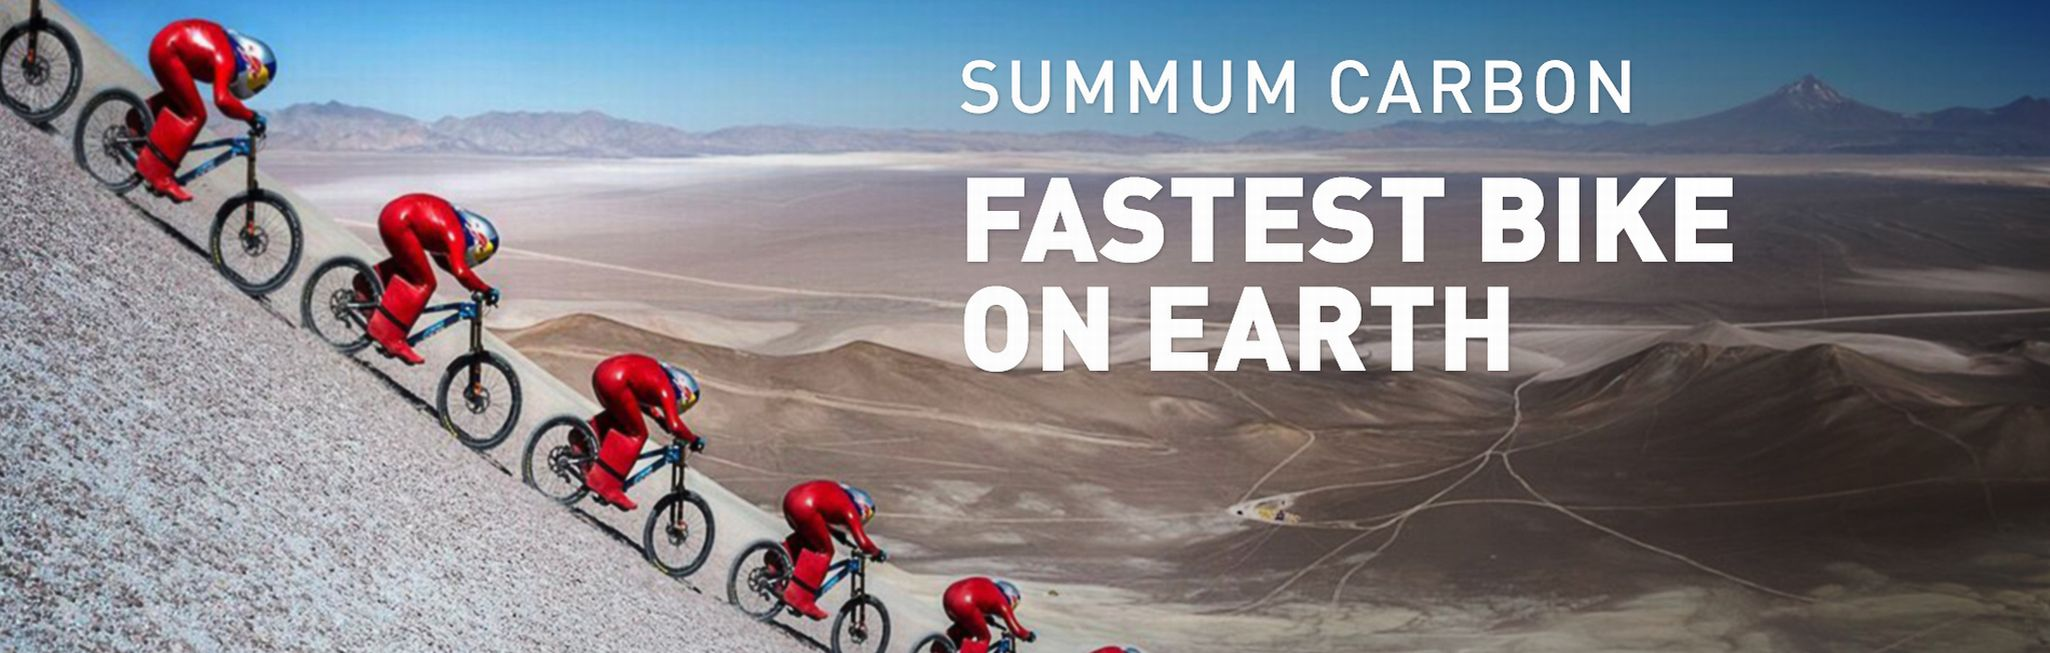 Summum Carbon Fastest bike on planet